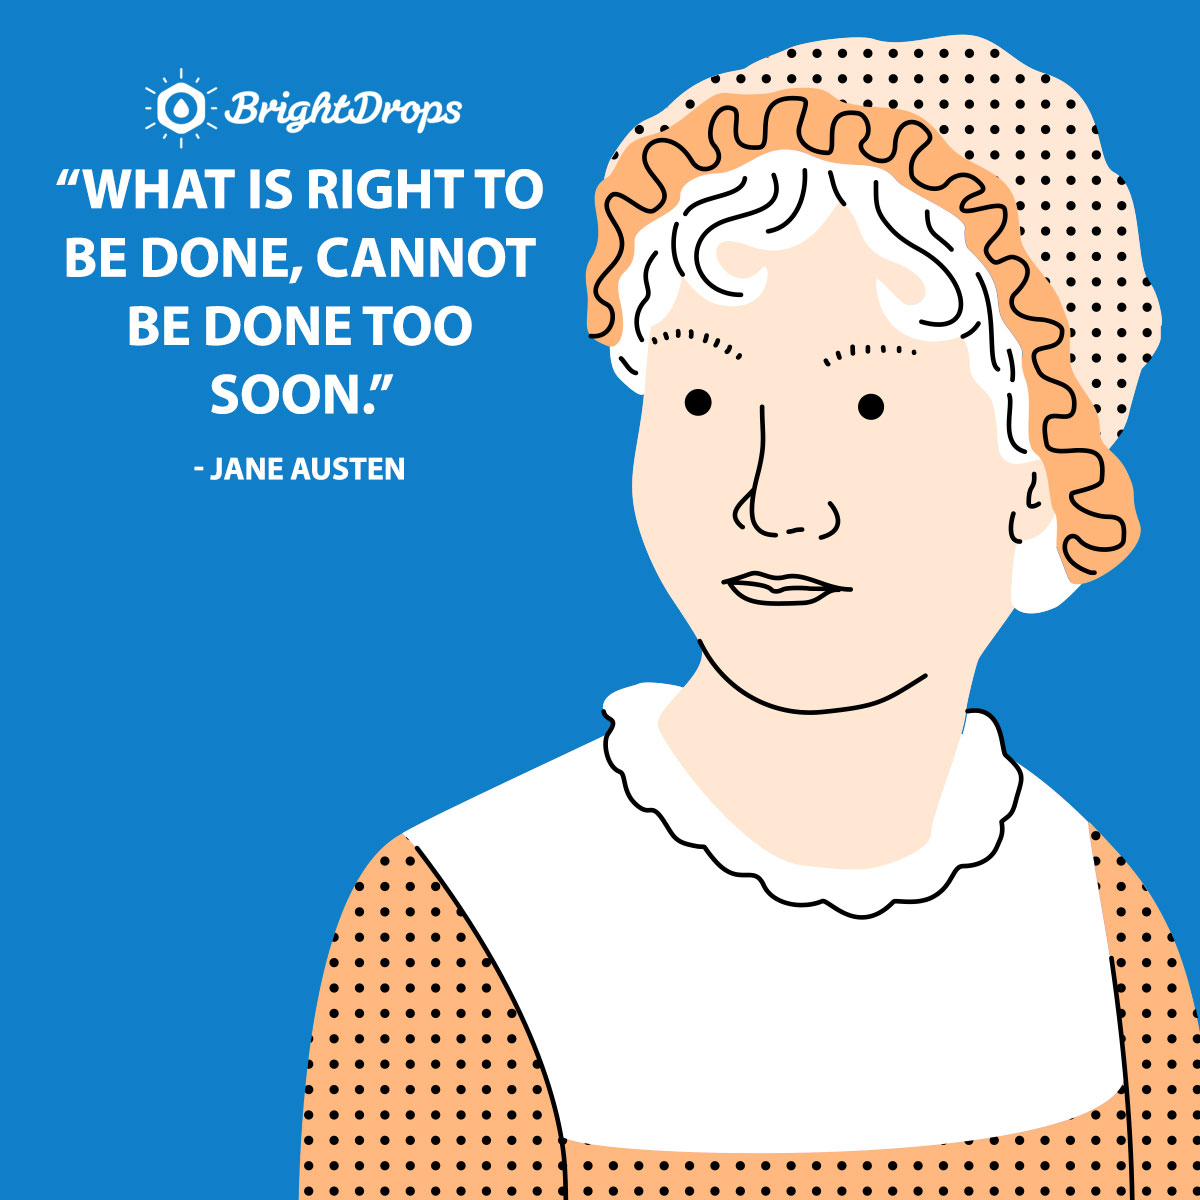 What is right to be done, cannot be done too soon. - Jane Austen